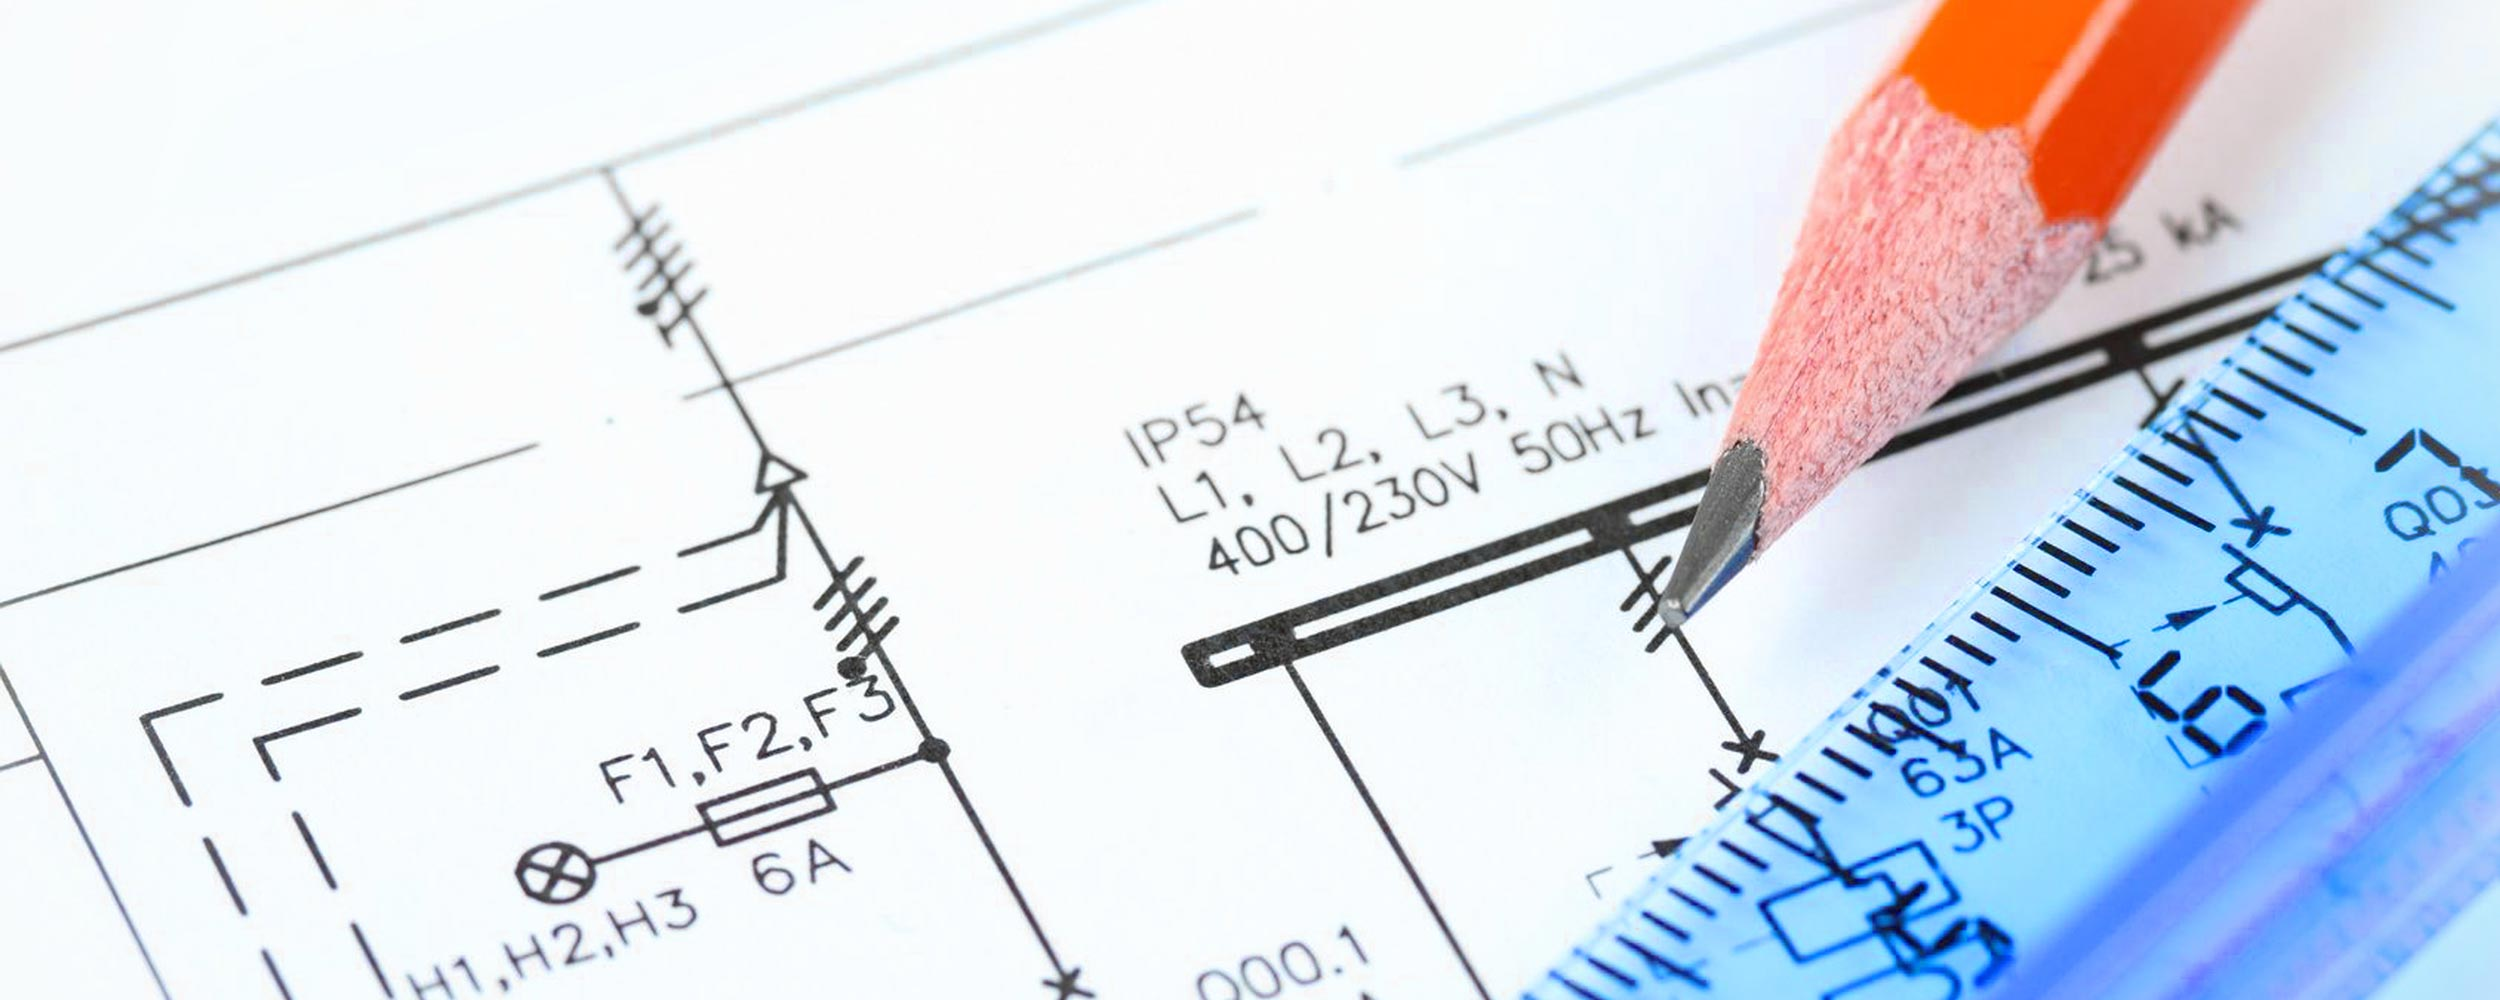 Electrical plan drawing